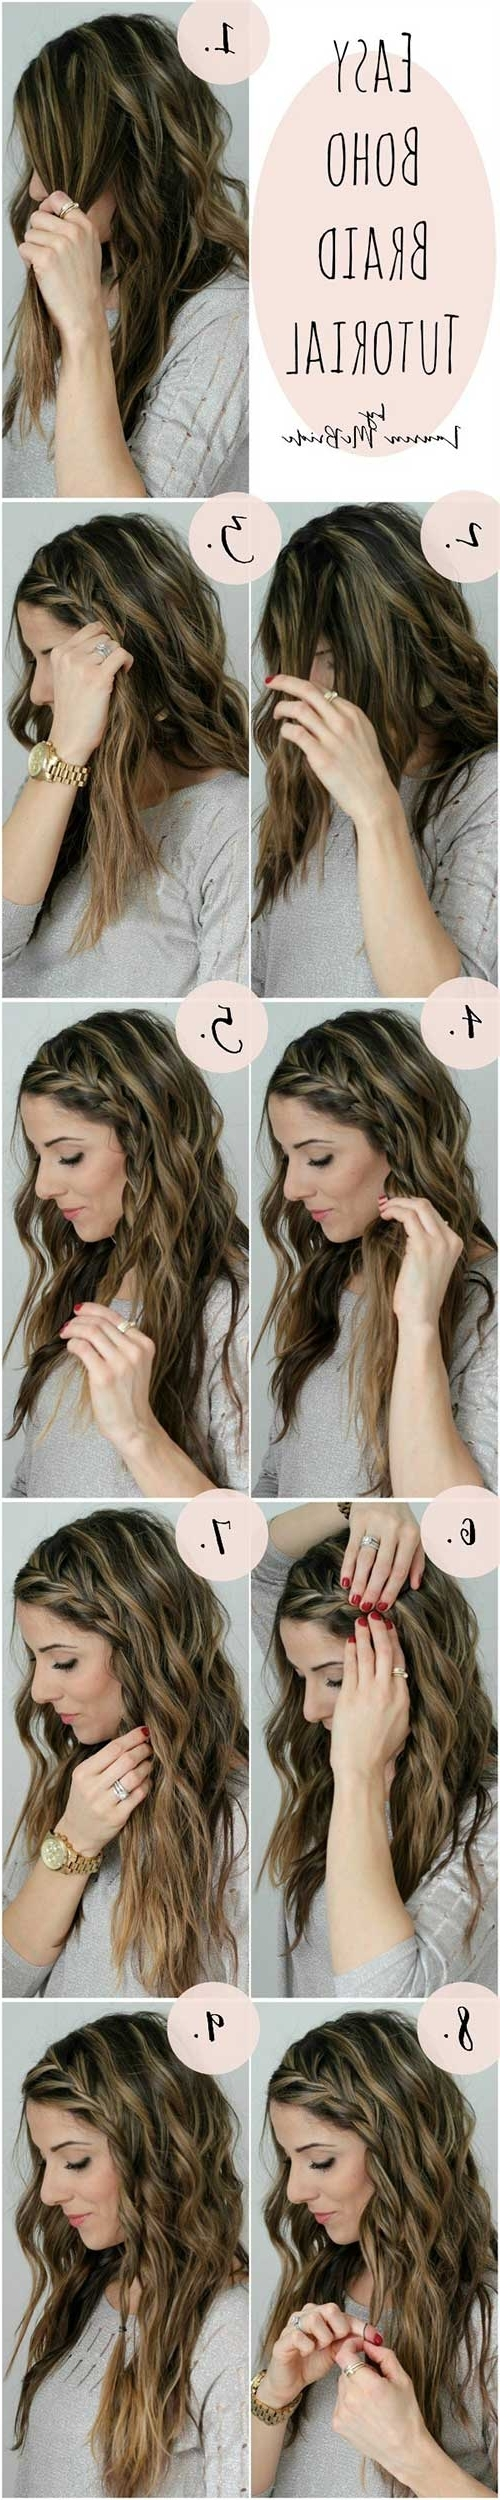 Favorite Flowy Side Braid Ponytail Hairstyles Regarding 20 Awesome Hairstyles For Girls With Long Hair (View 9 of 20)